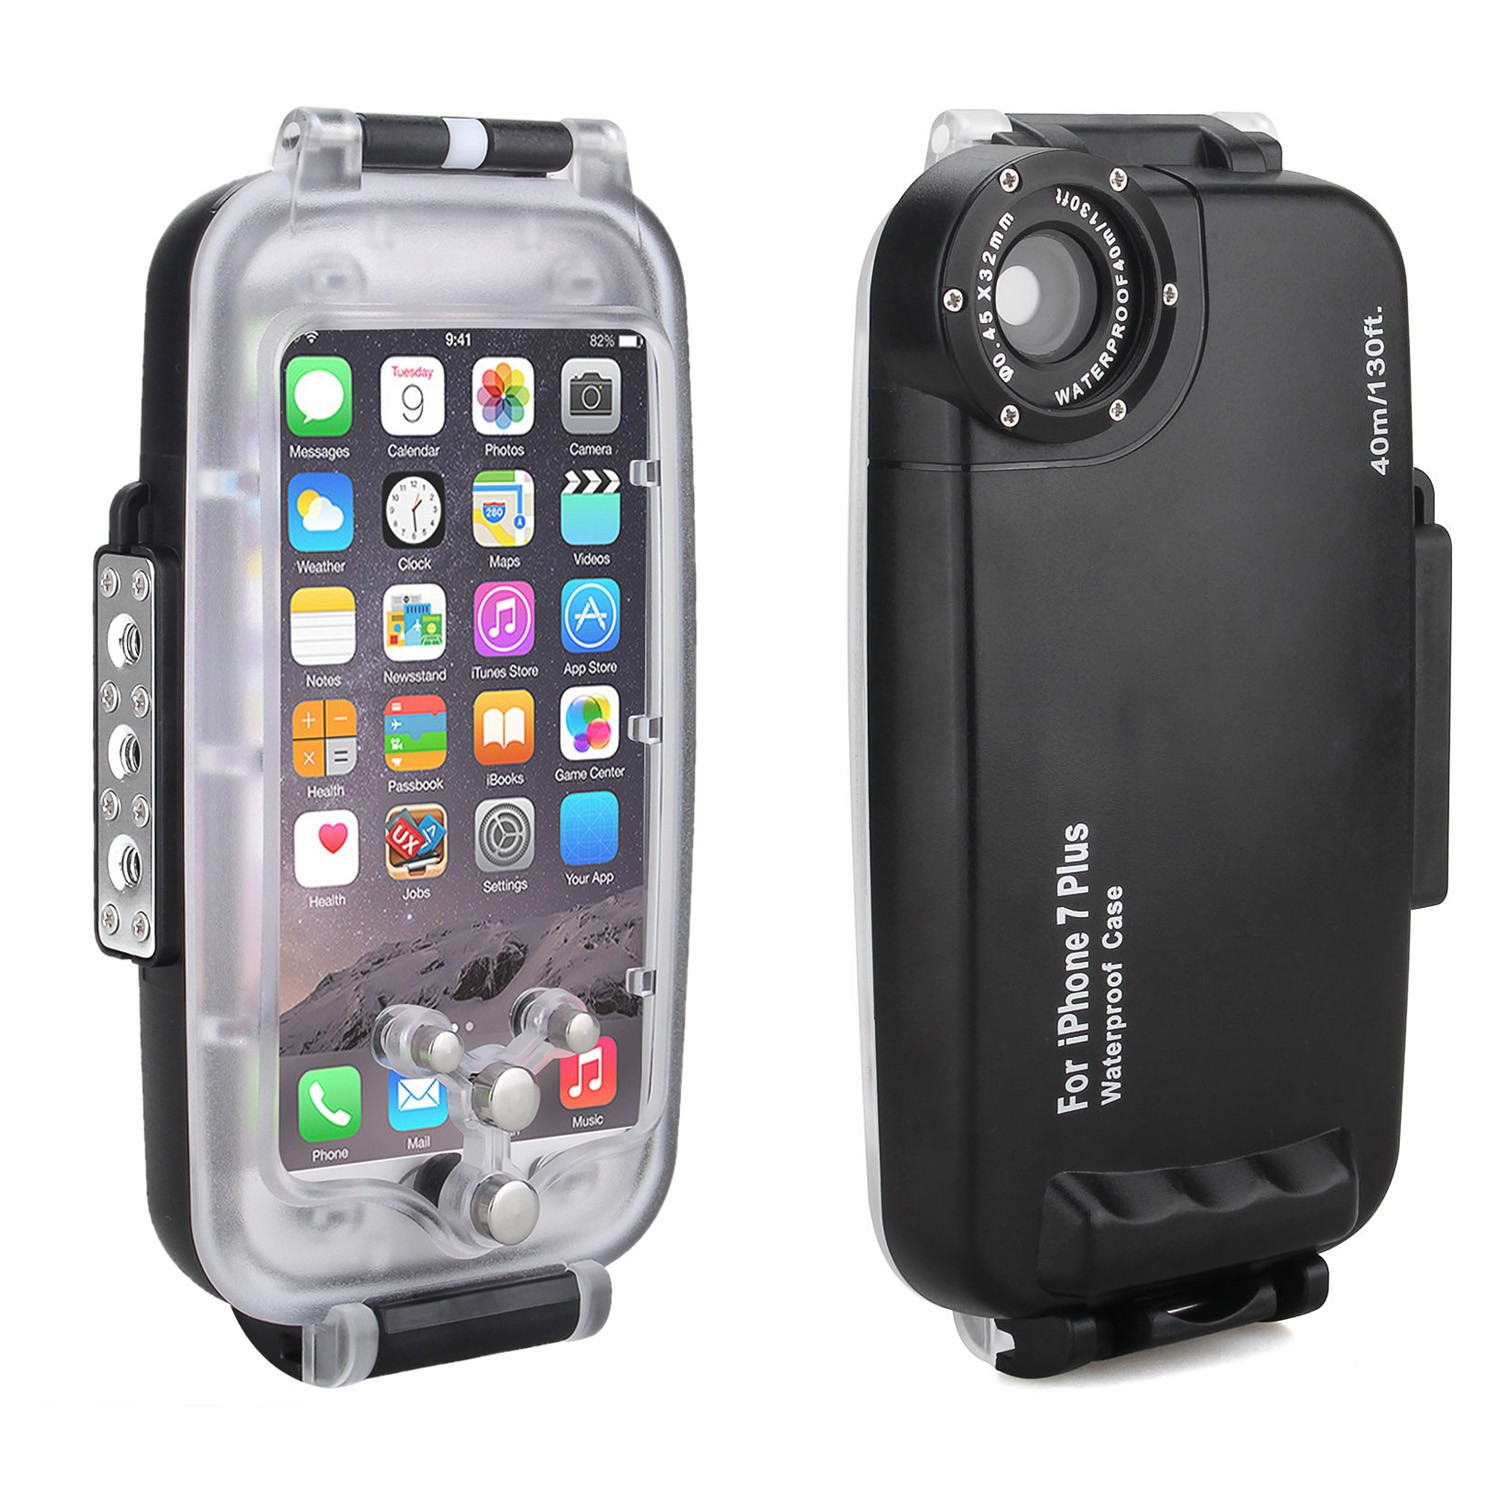 Meikon 40m/130ft Waterproof Underwater Housing Case for iPhone 7 Plus Black Waterproof Underwater Case Cover for iPhone 7 Plus baseus genya leather case for iphone 7 plus black